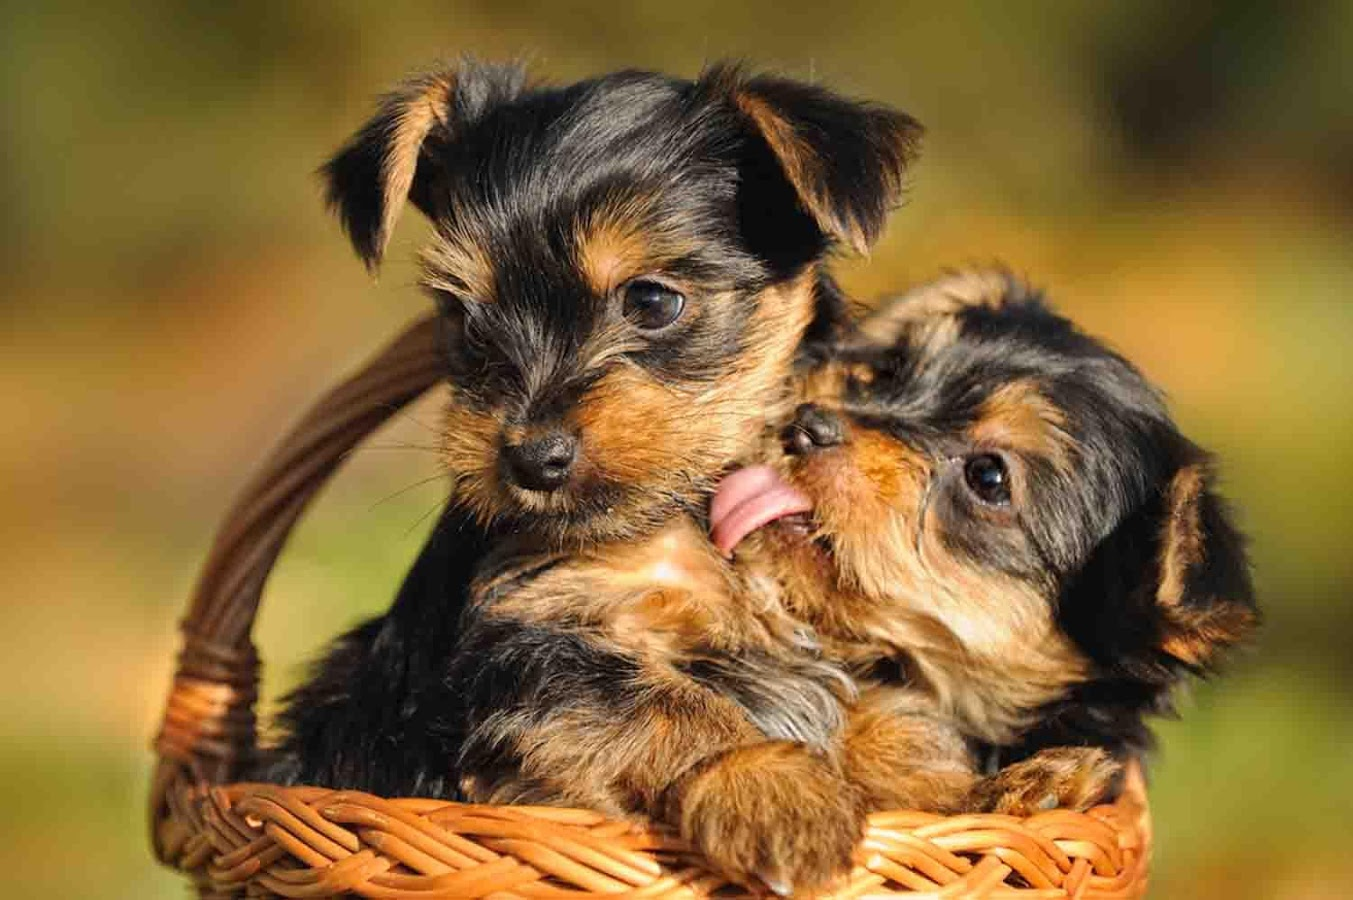 Furry Babies Has The Cutest Yorkie Puppies For Sale Anywhere Come Check Them Out Furry Babies